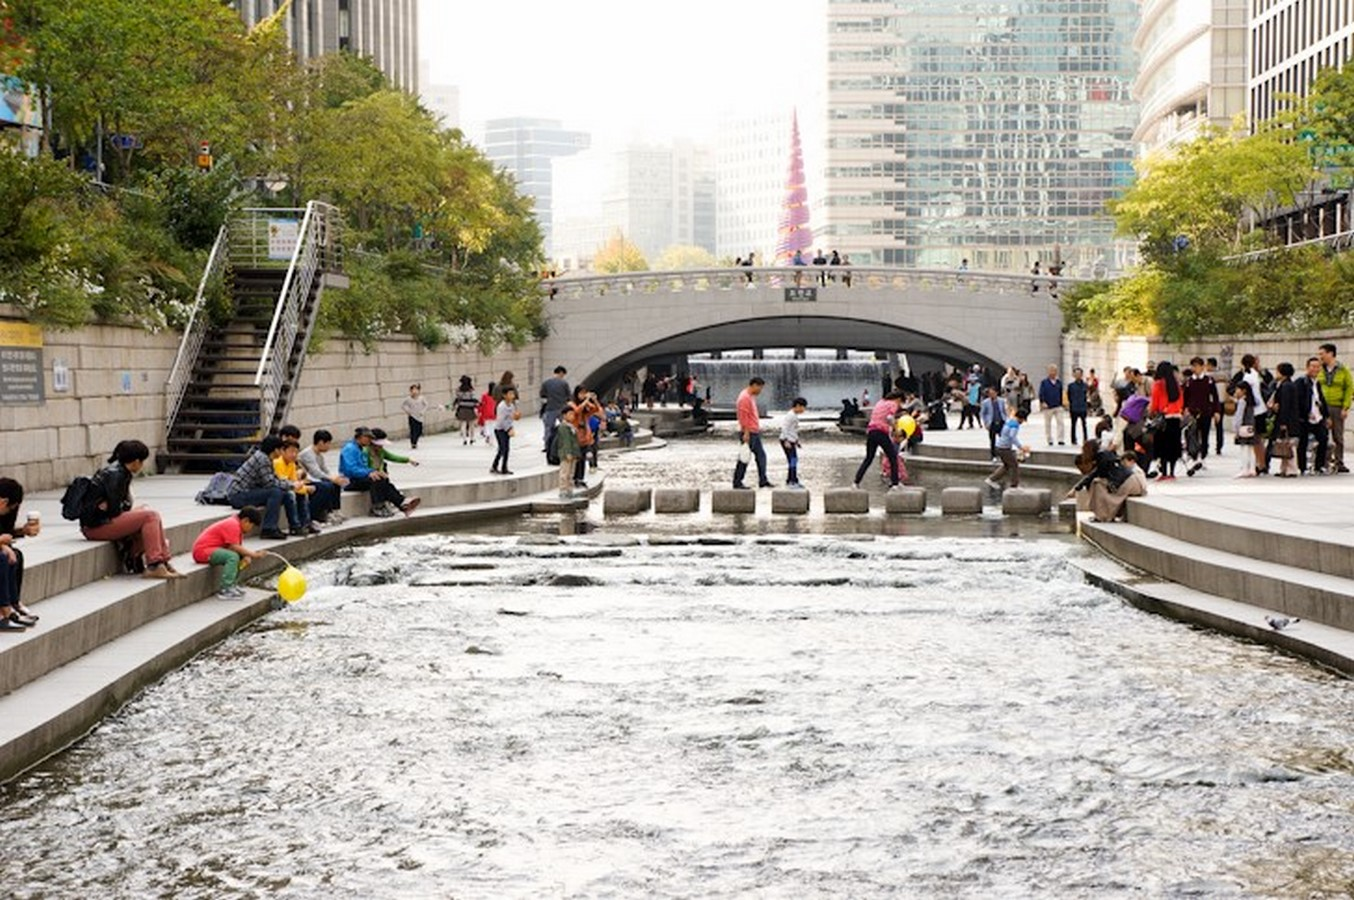 Evolution of Public Spaces in Contemporary Urban Life - Sheet3